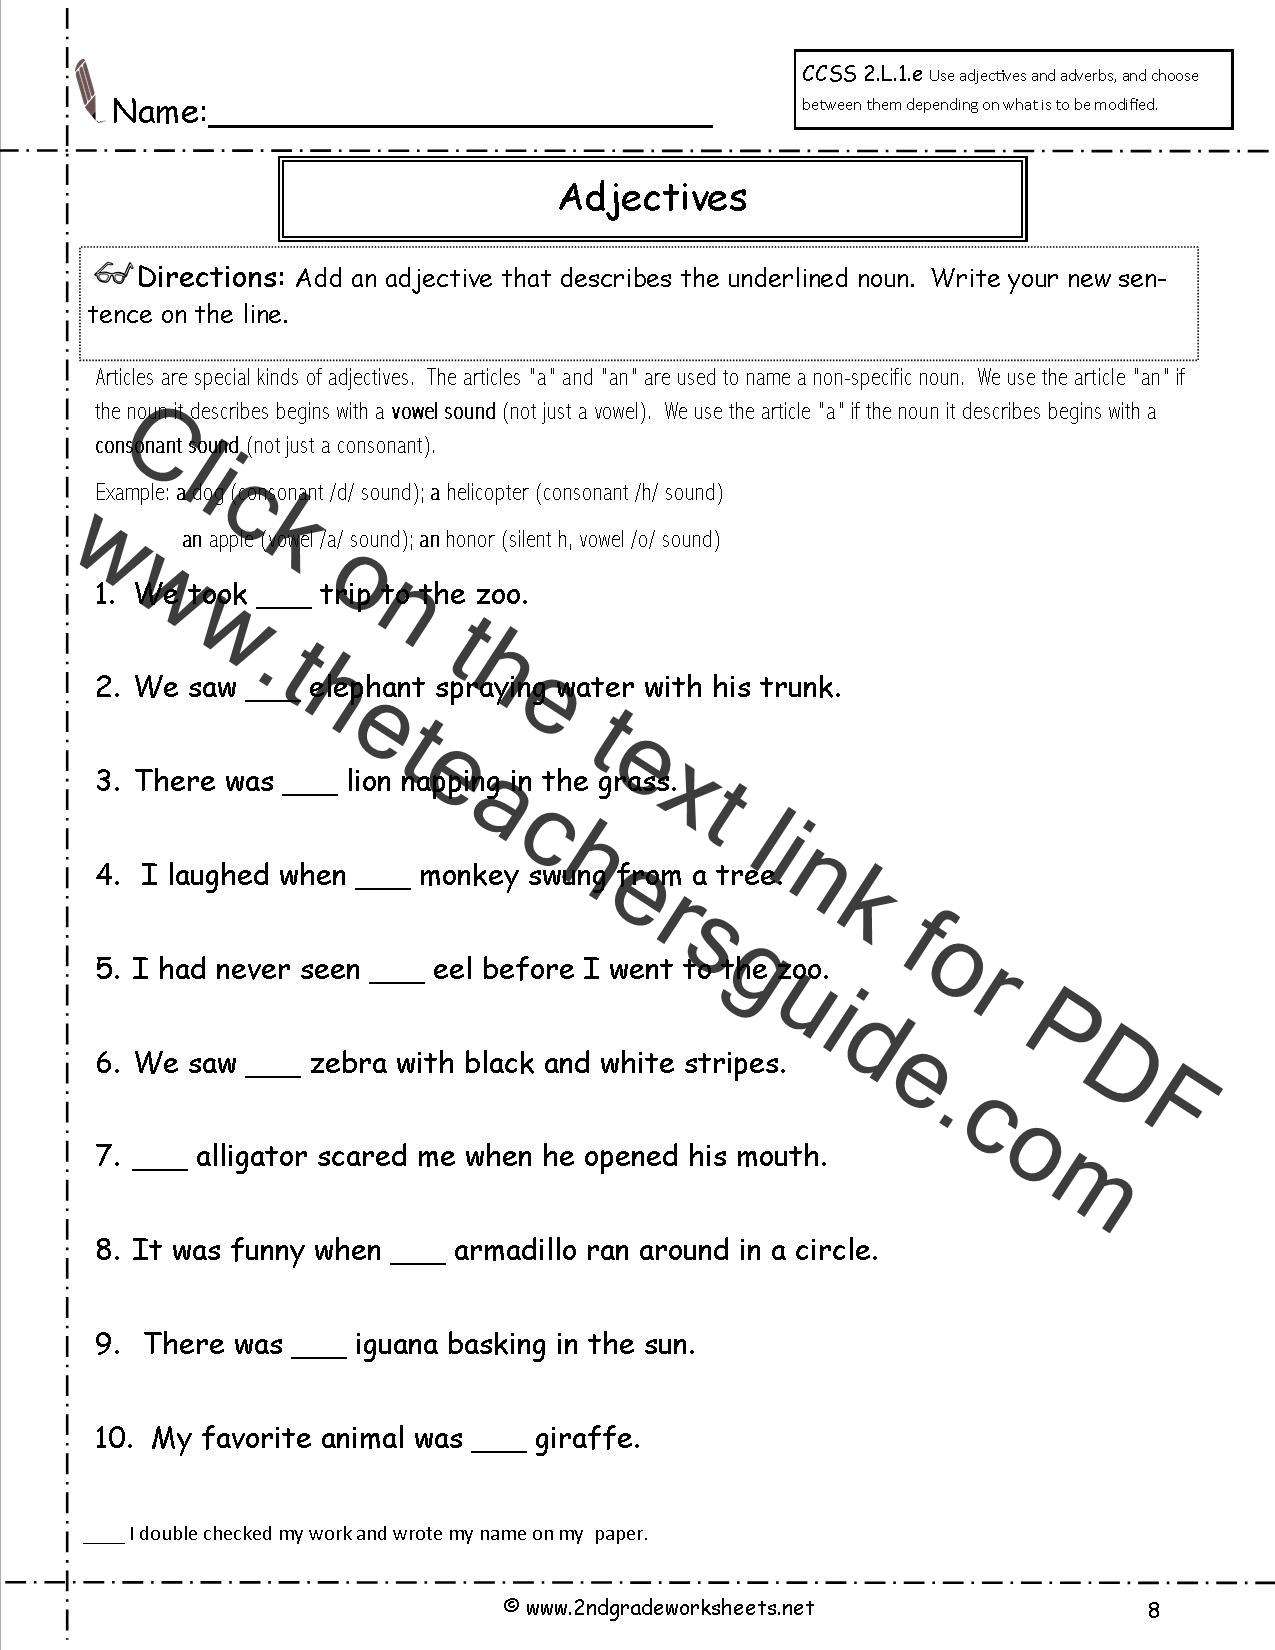 Worksheets Worksheets For 2nd Graders free languagegrammar worksheets and printouts adjectives worksheets